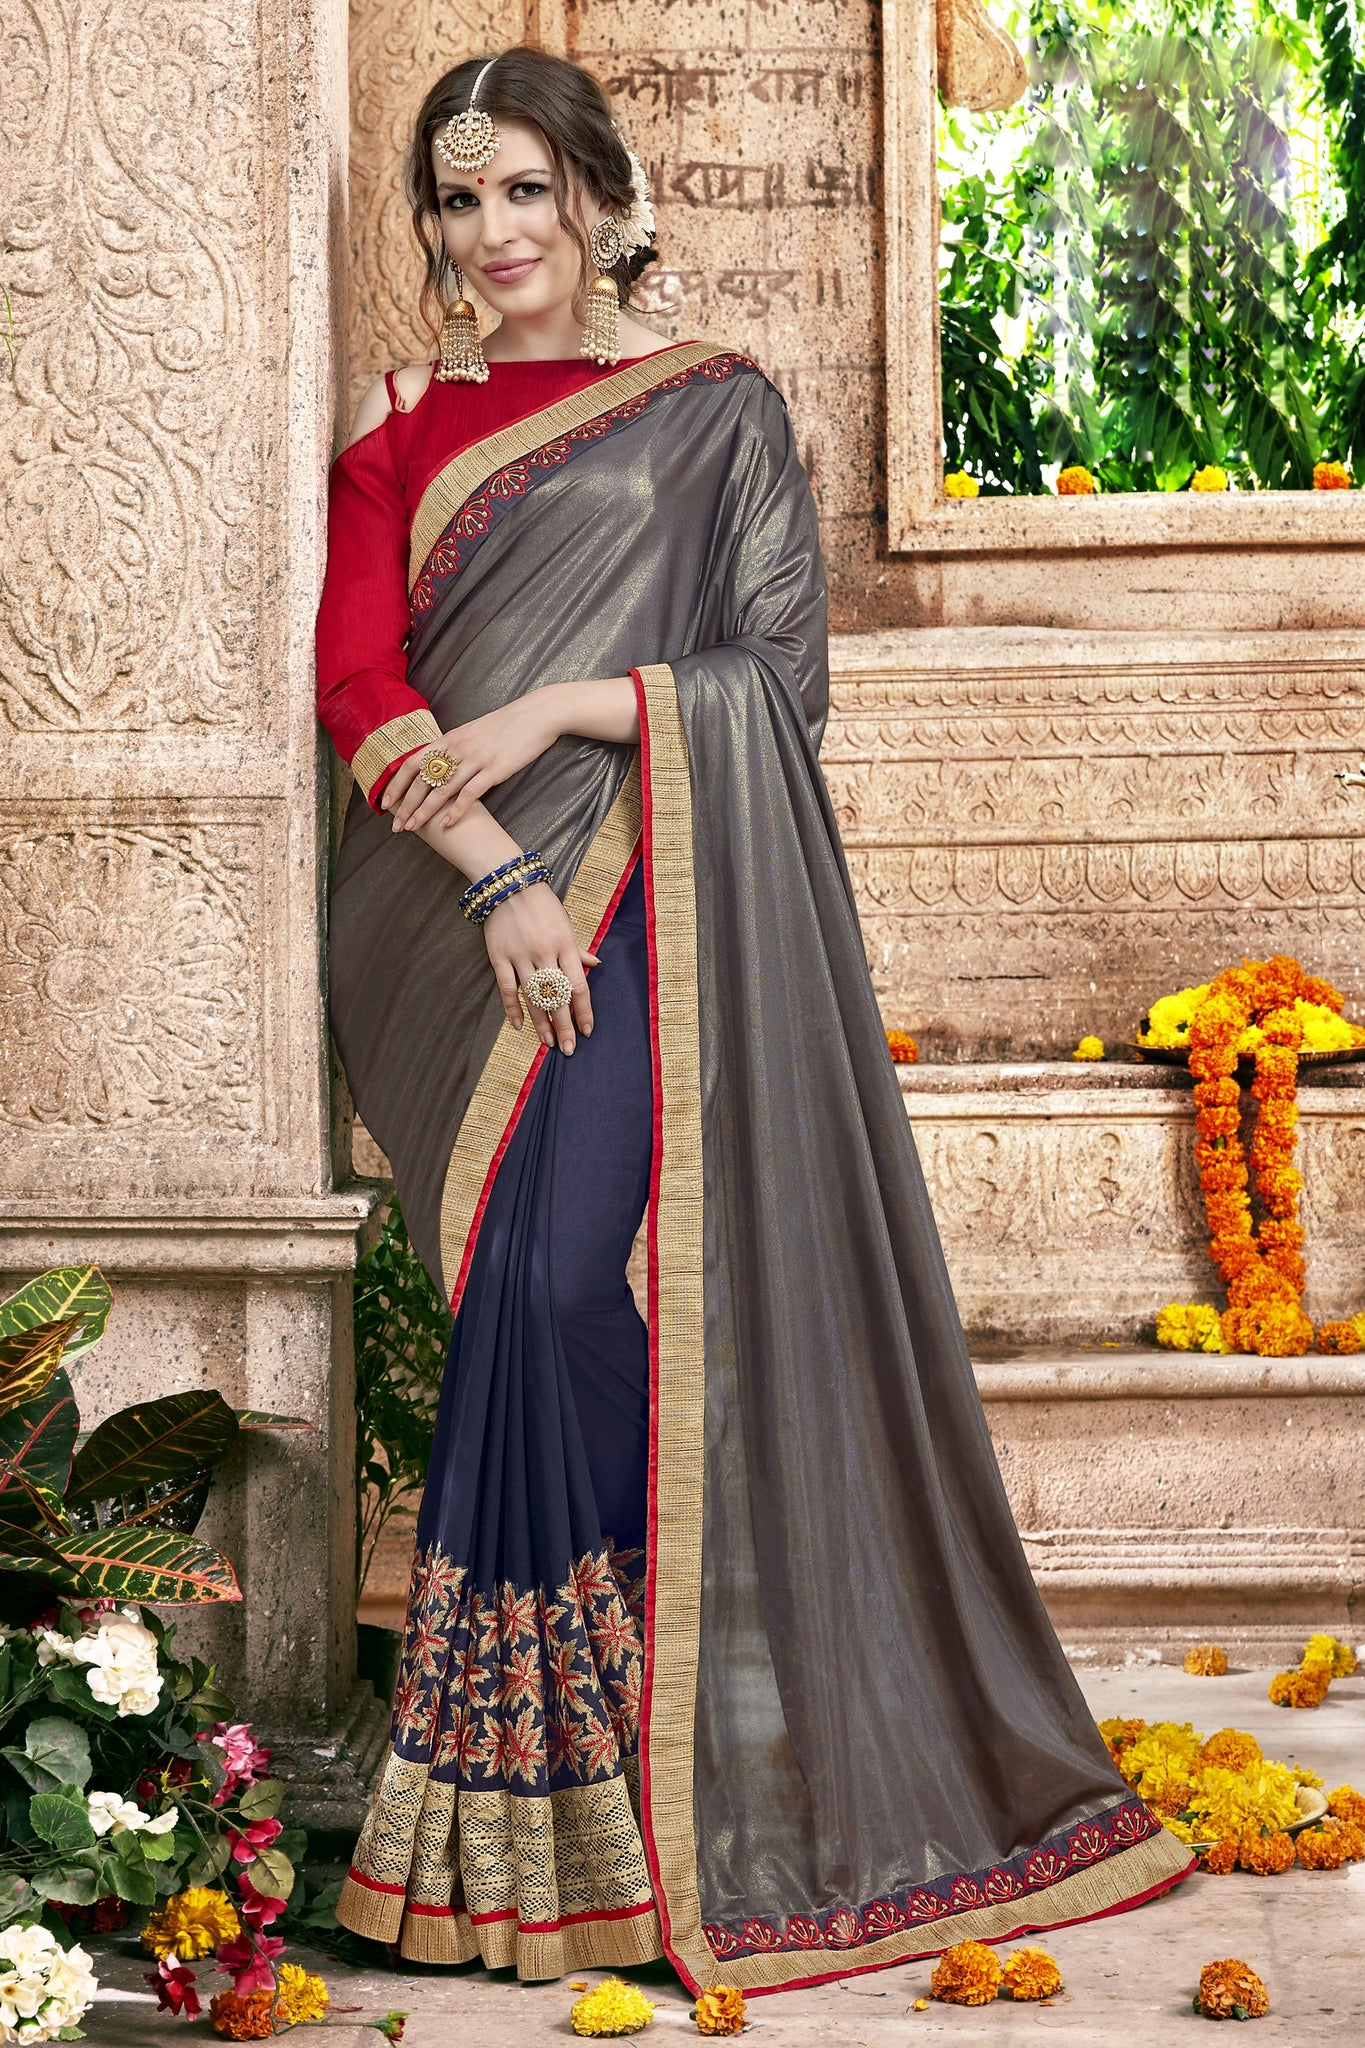 Splendid Classic syle sarees in Georgette fabric party sarees Grey & Blue color good Embroidery , Lace Saree FZ 707